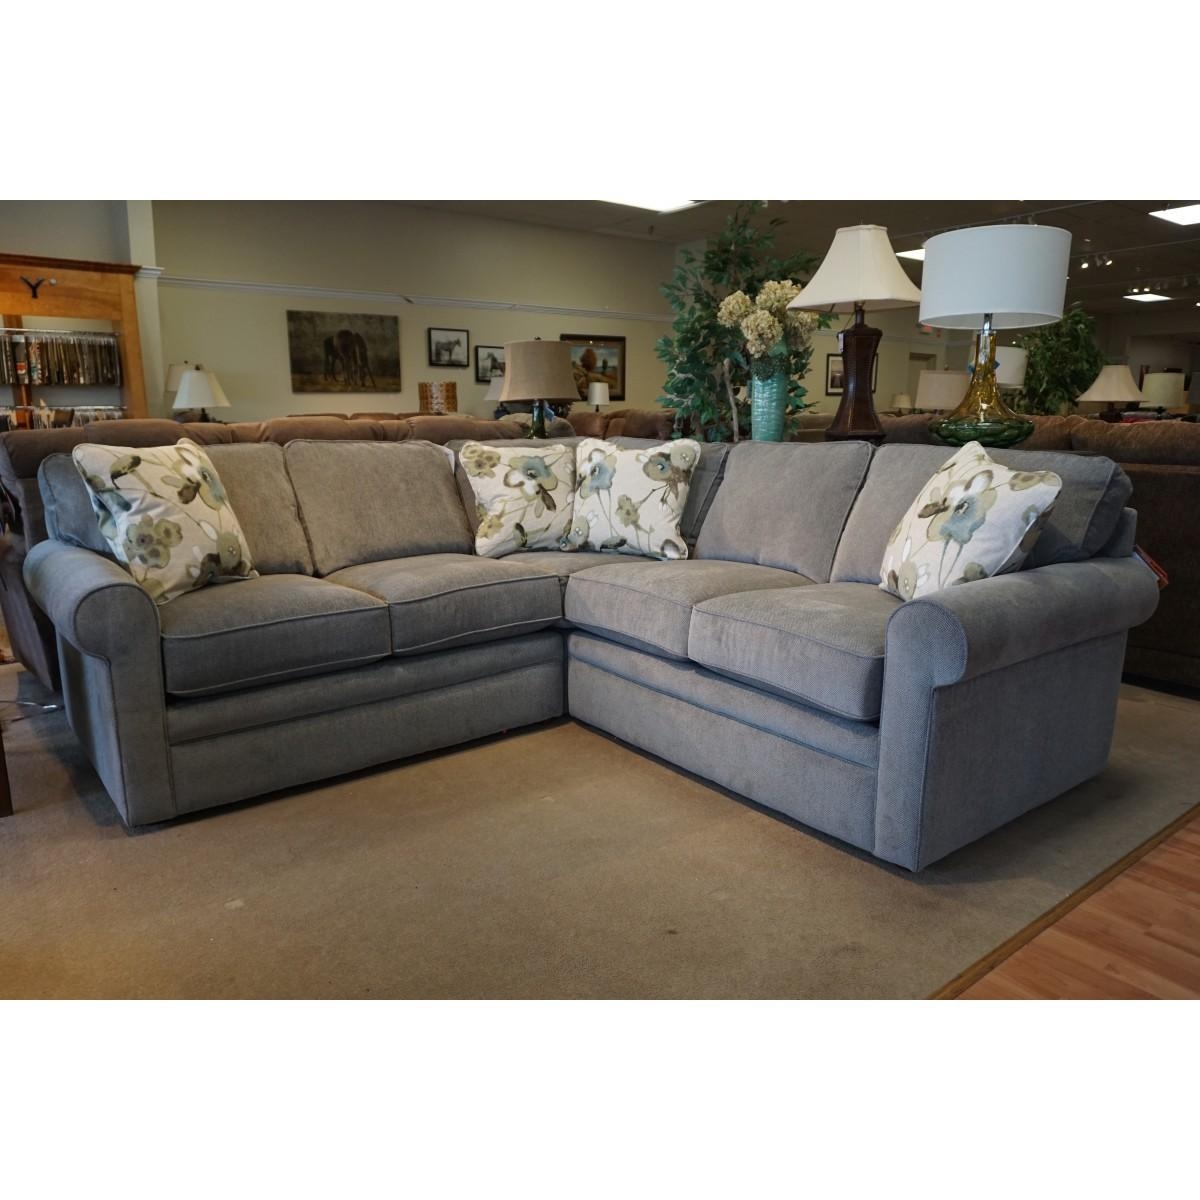 Z-Boy Collins Sectional intended for Lazyboy Sectional Sofas